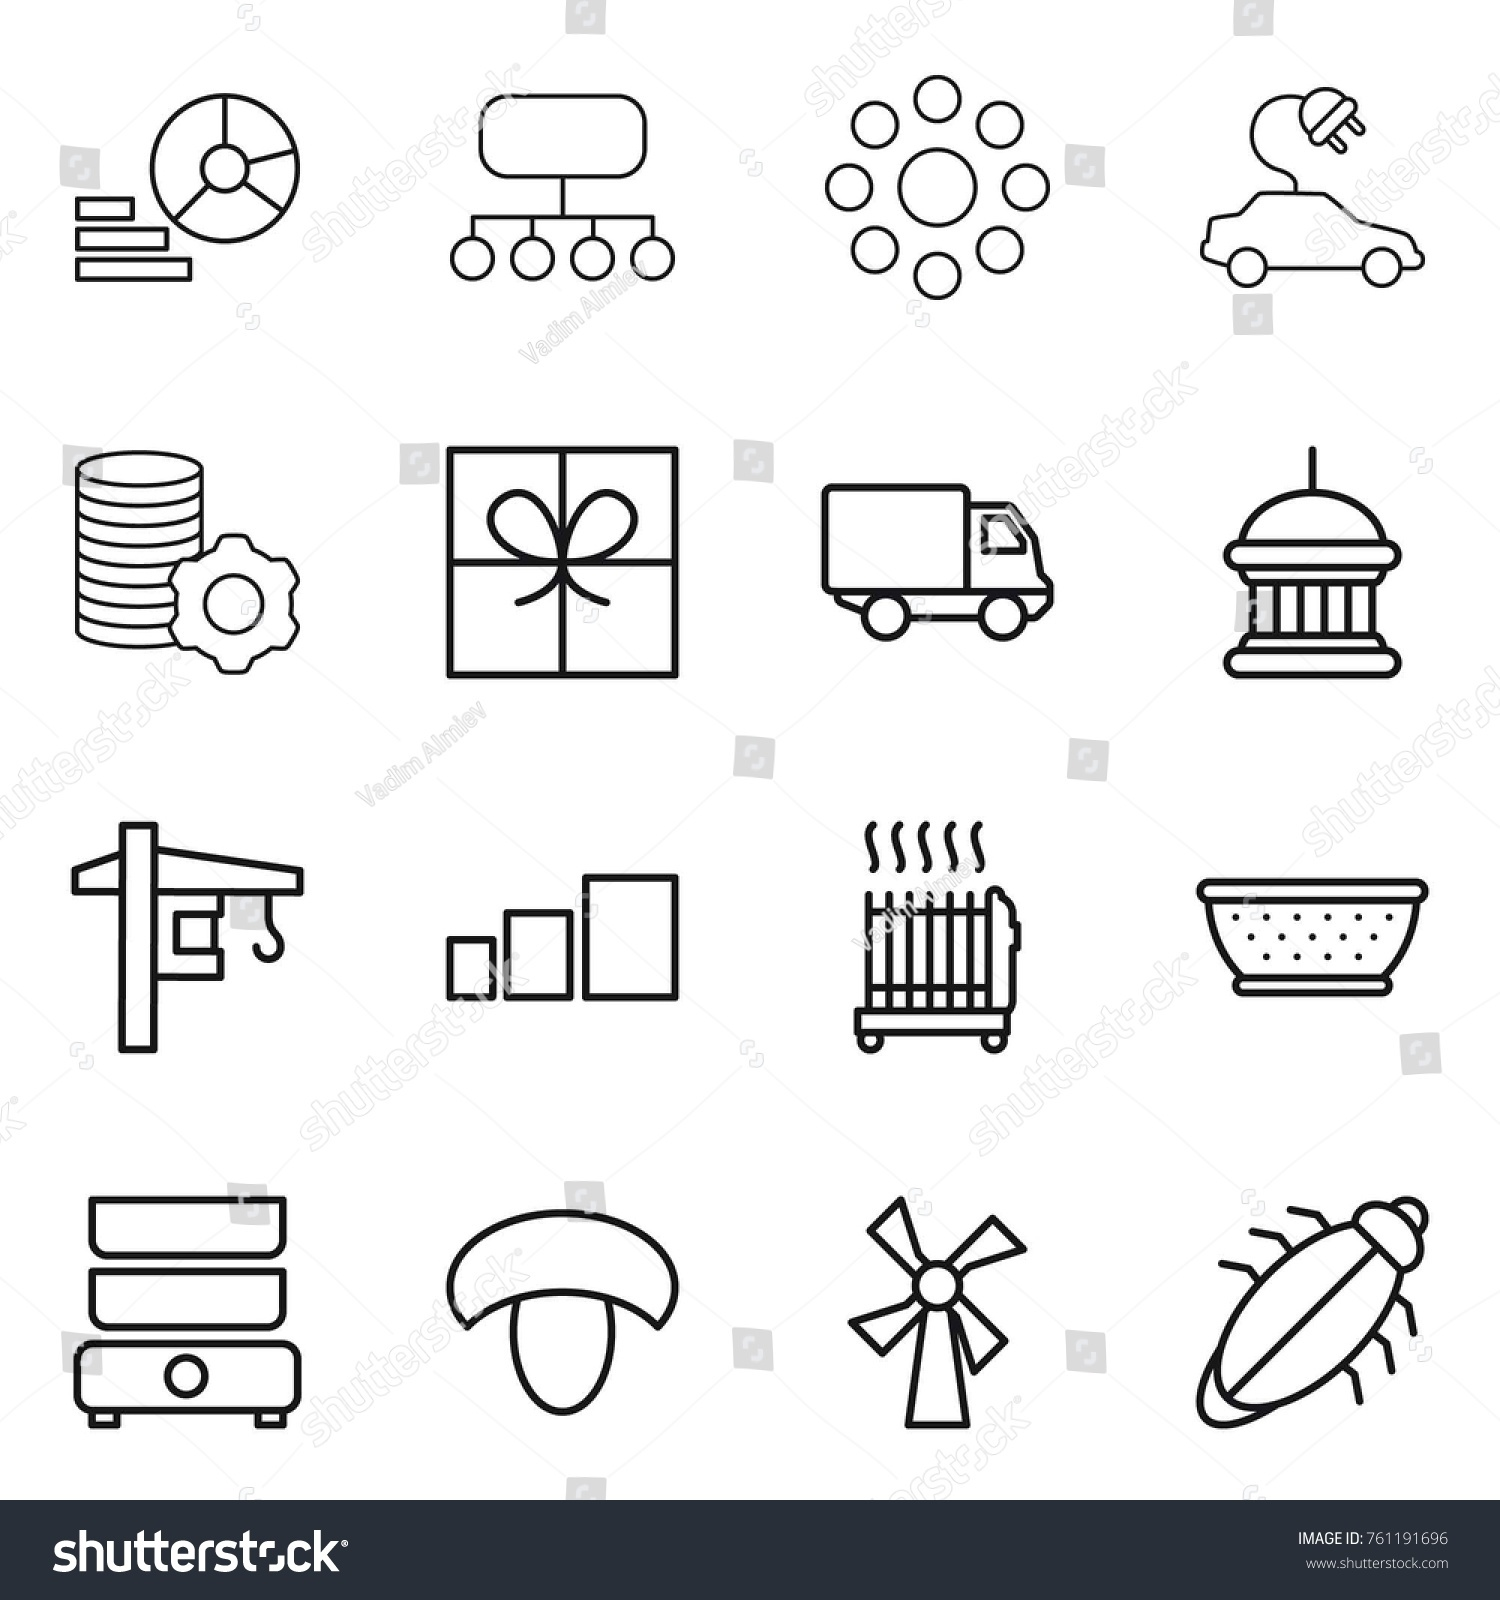 hight resolution of thin line icon set diagram structure round around electric car virtual